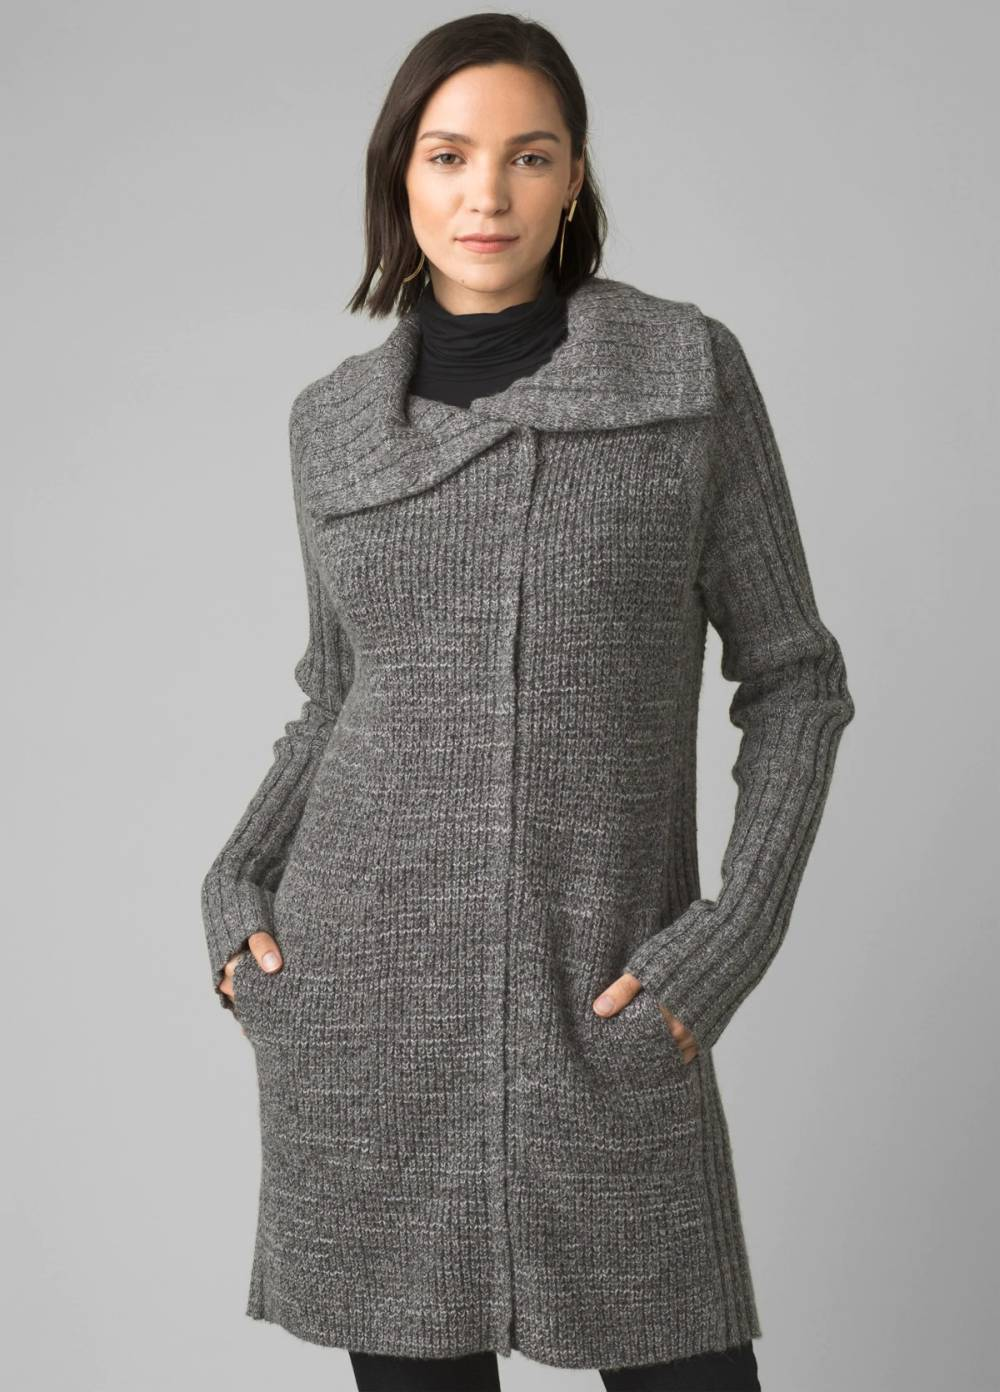 prana cheap cute cardigan sweater